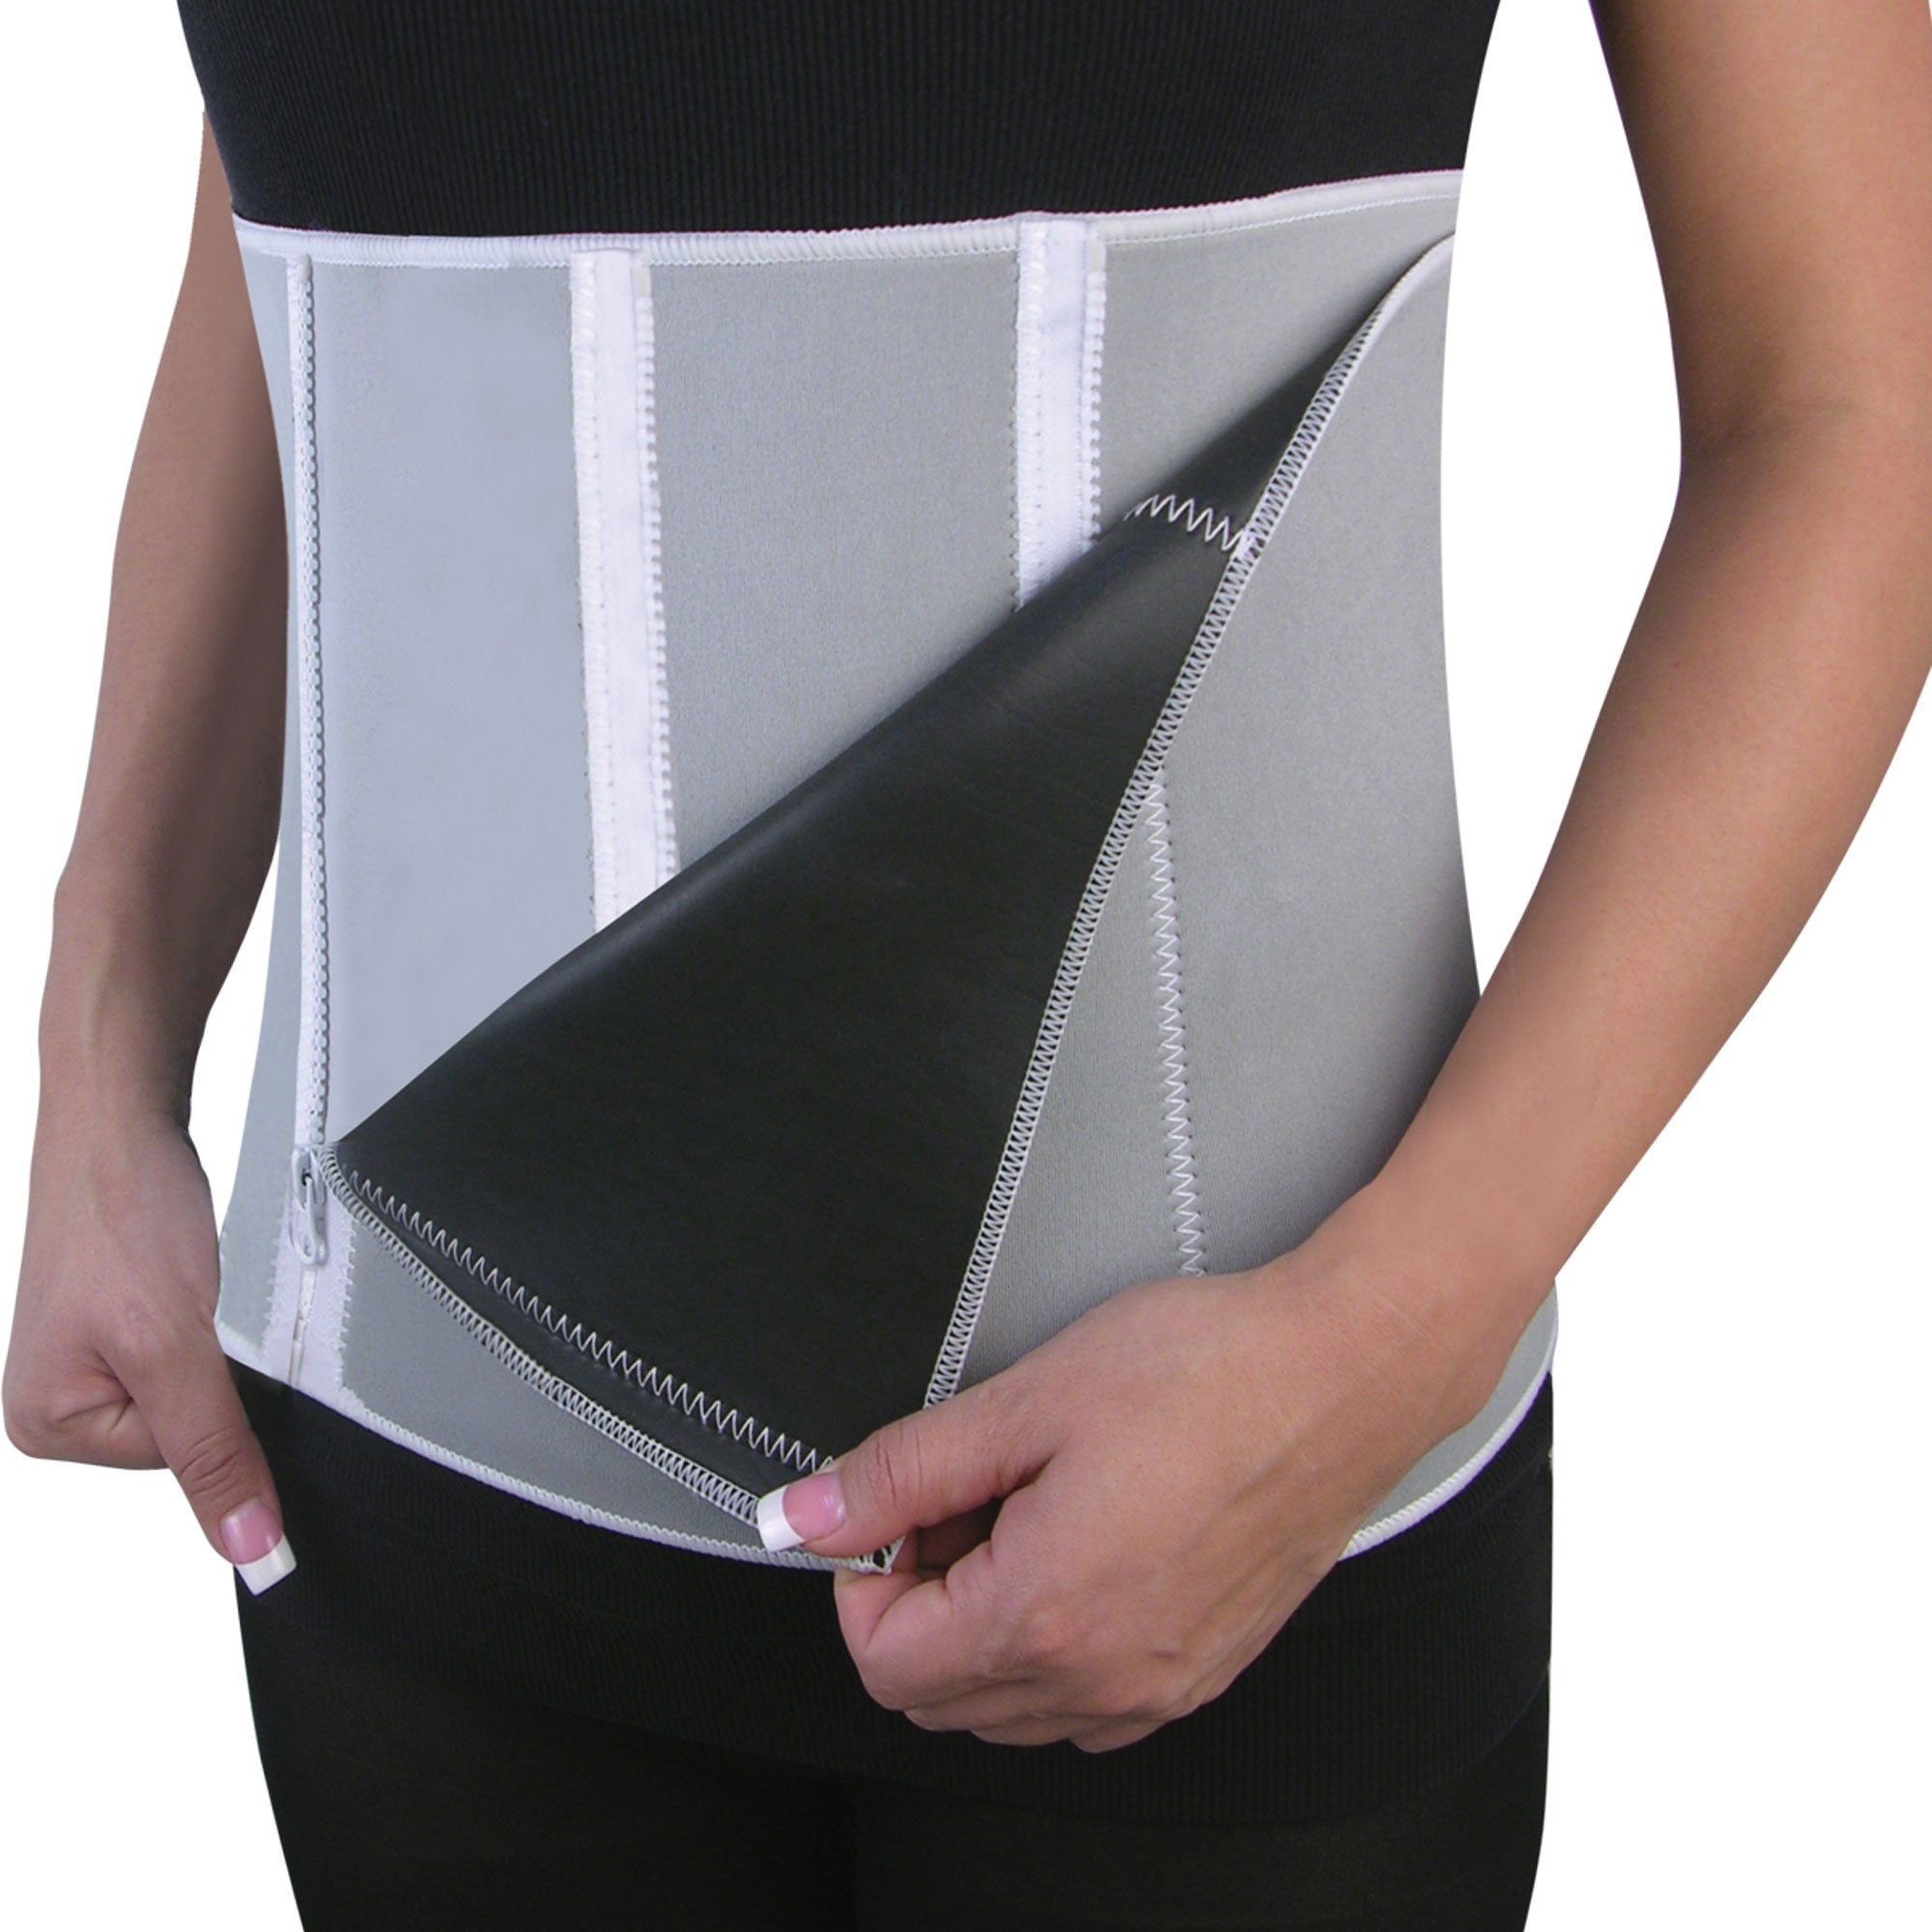 Remedy Adjustable Slimming Exercise Belt